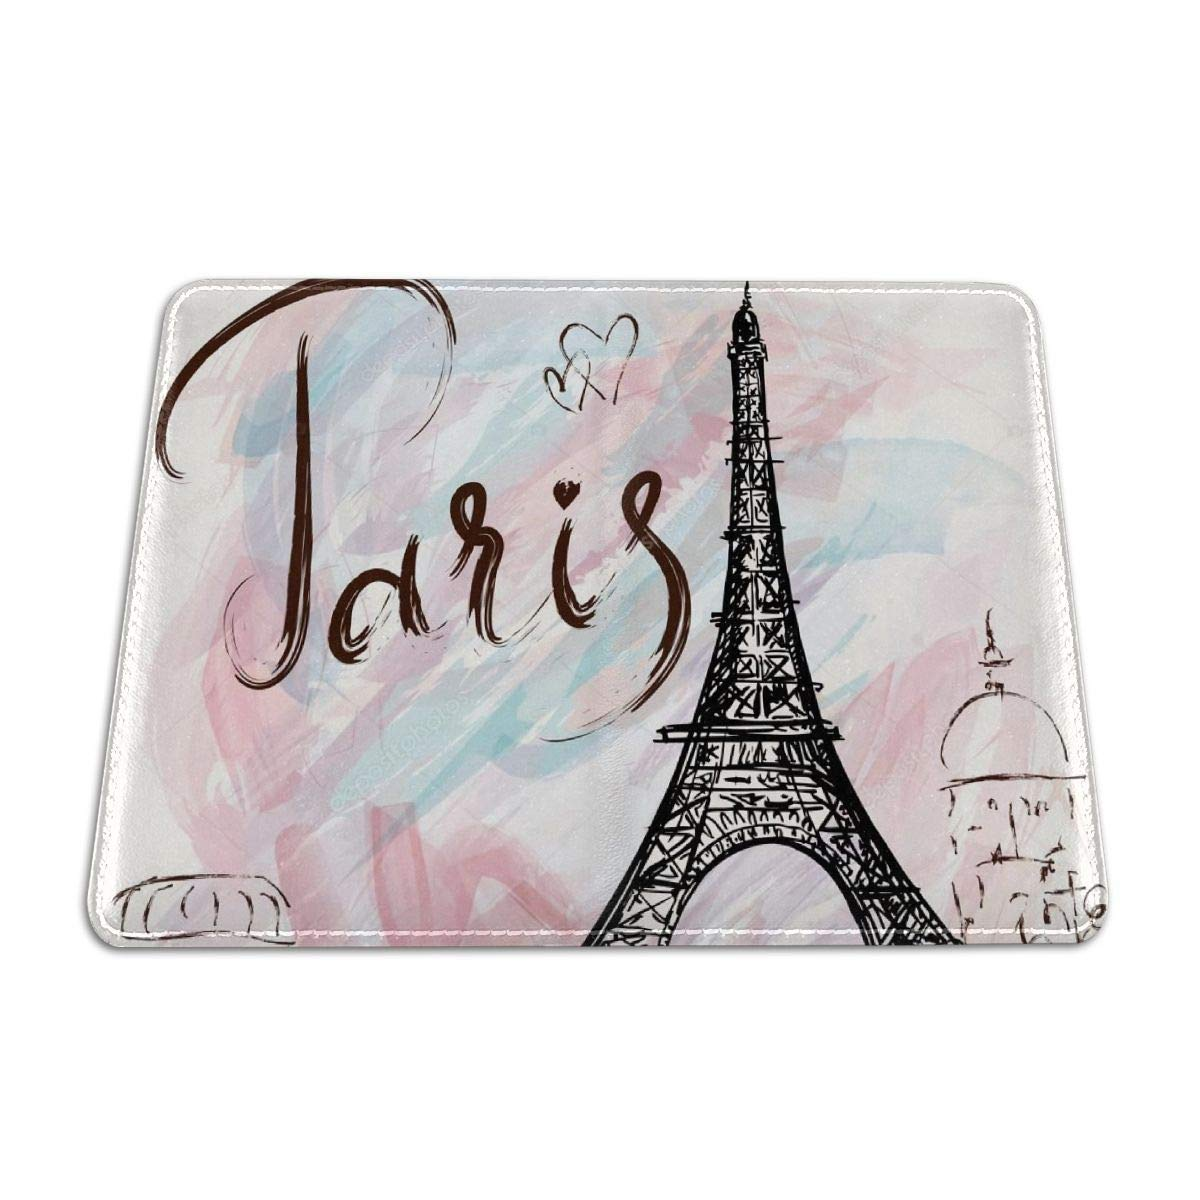 Dongingp Cool Paris Personalized Leather Passport Cover Travel Gifts 5.51 inch